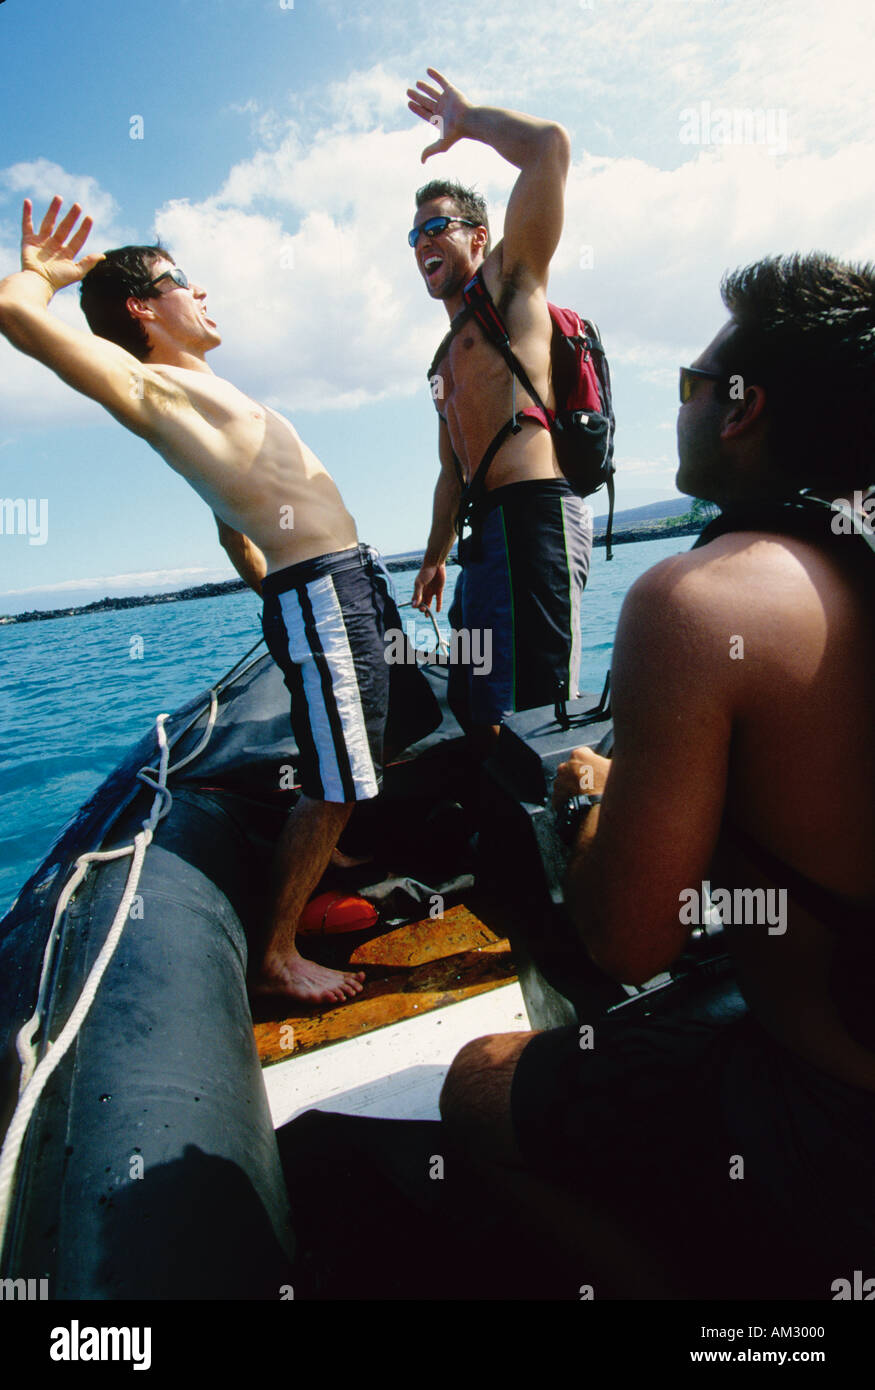 Men boating in an inflatable boat in Hawaii - Stock Image